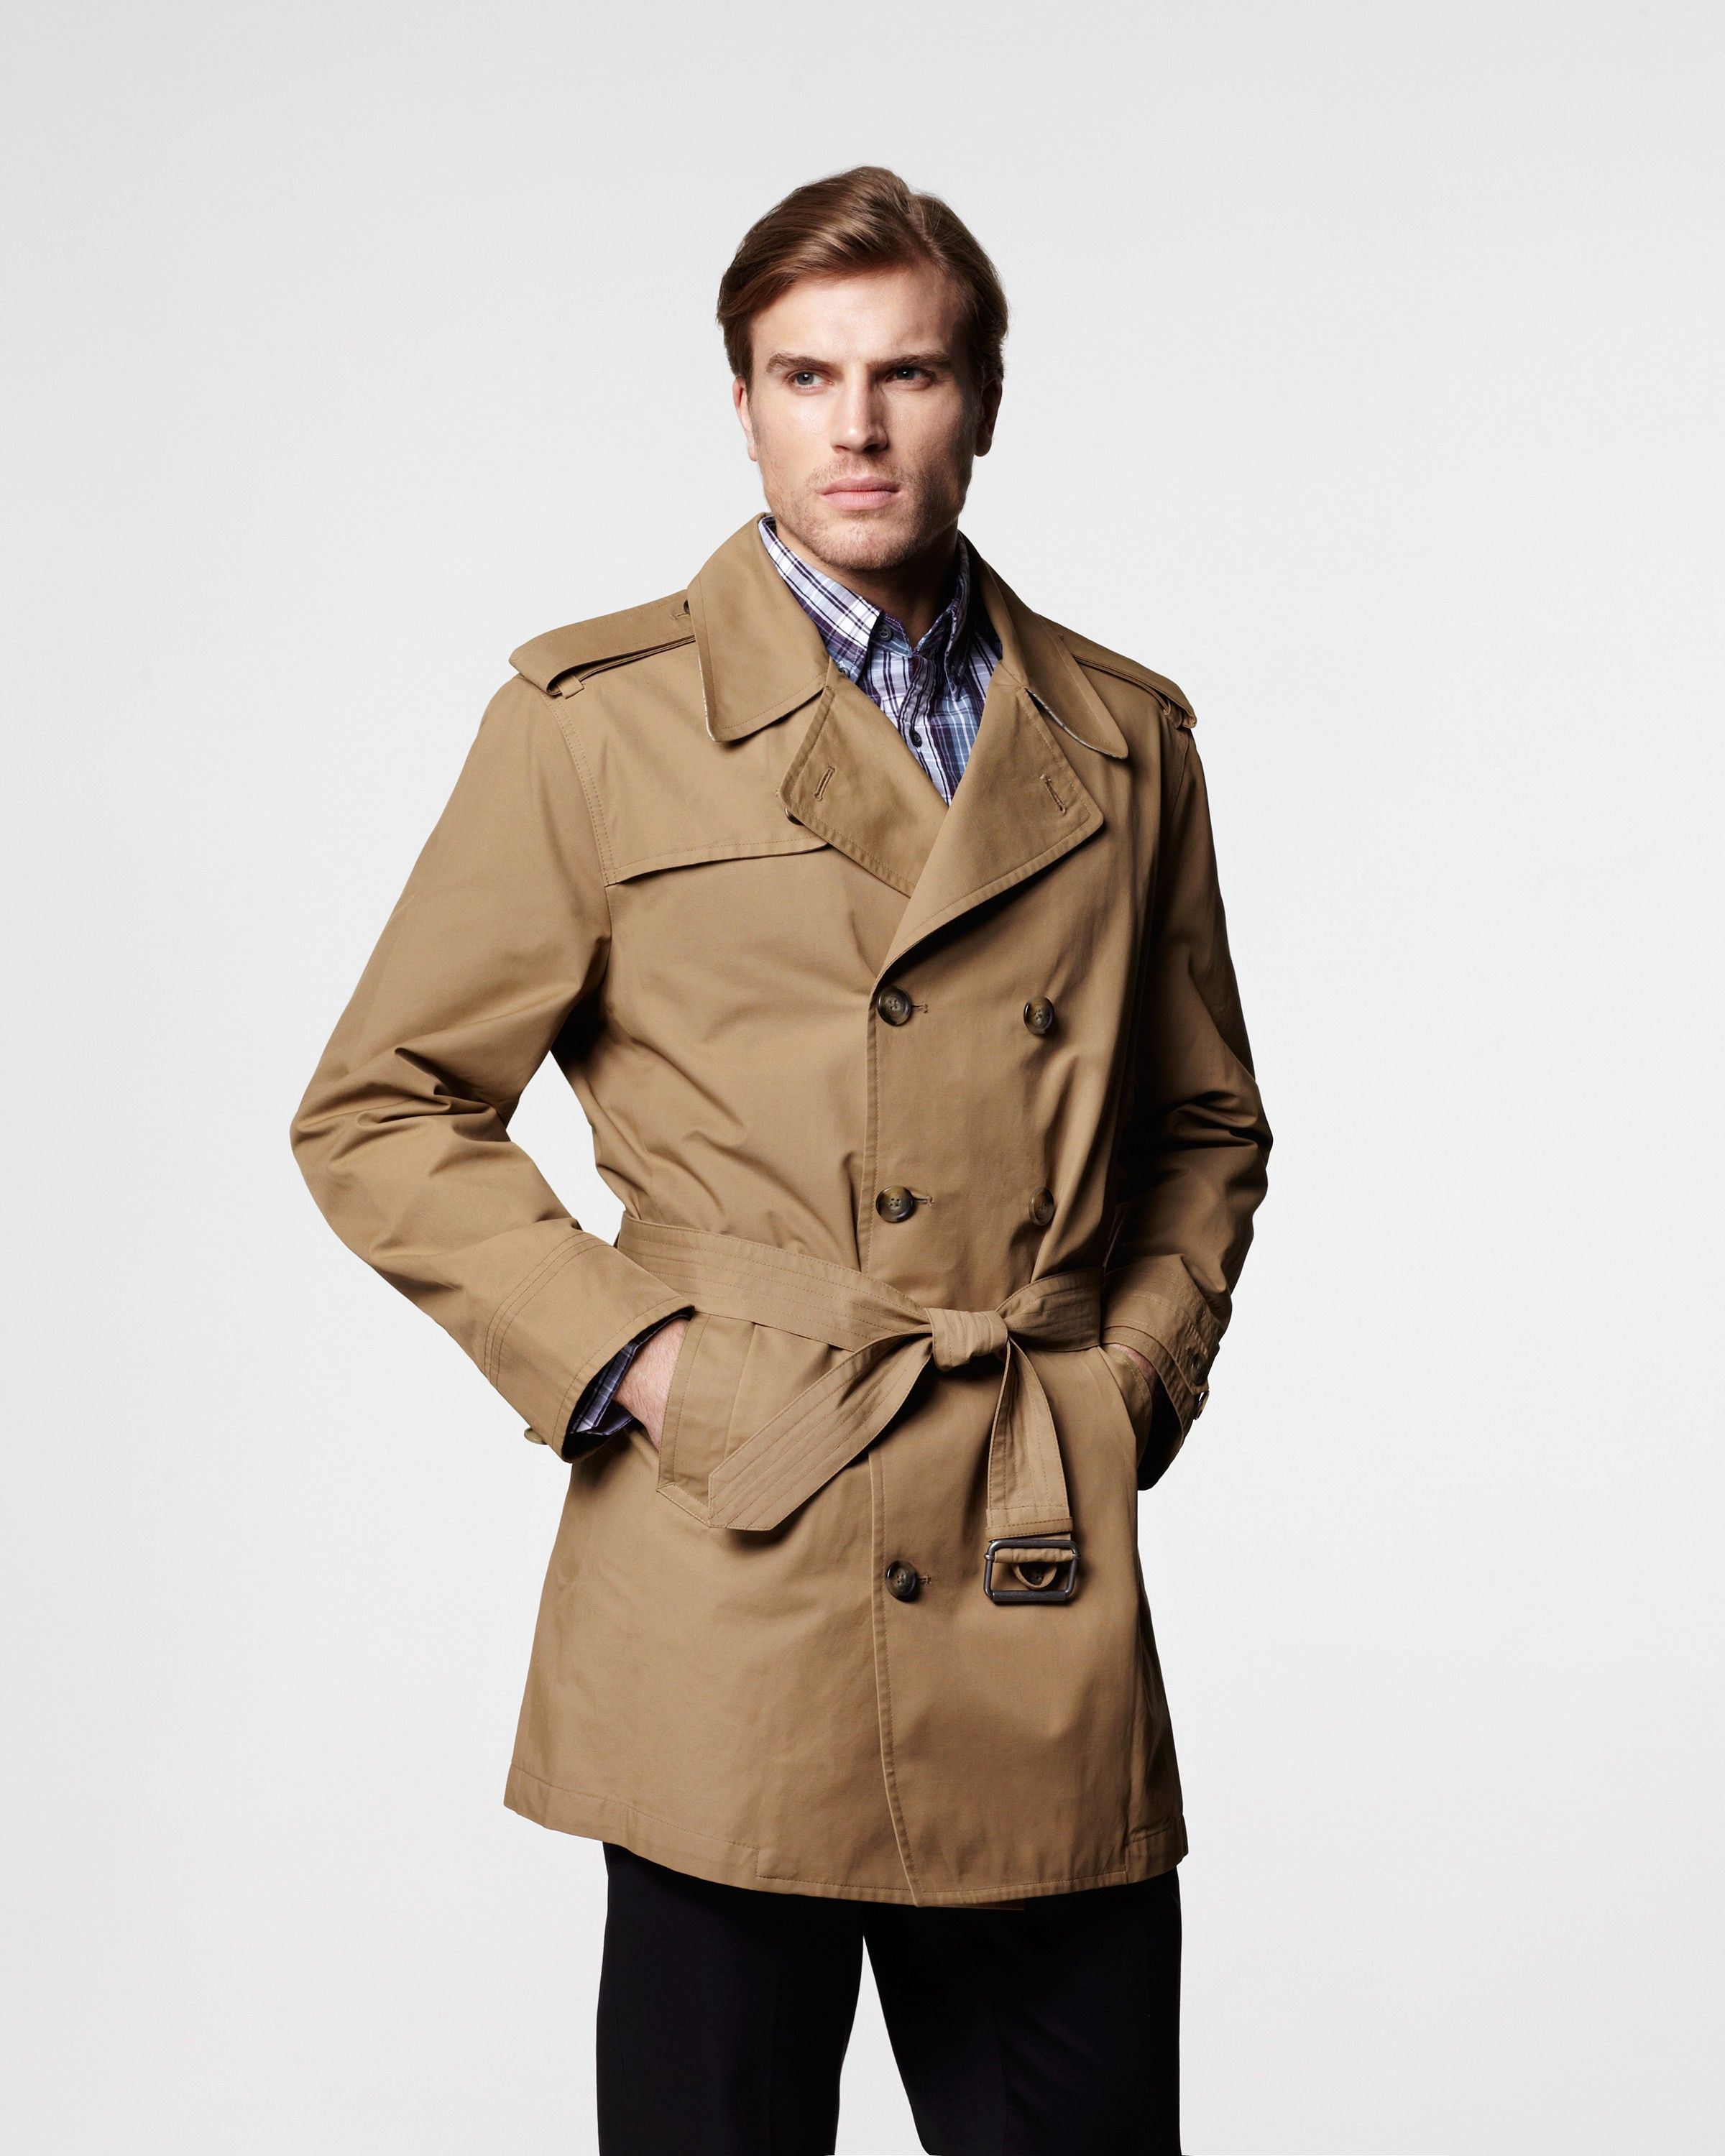 London Fog Essex Short Trench Coat [On Sale for $109] | the ...